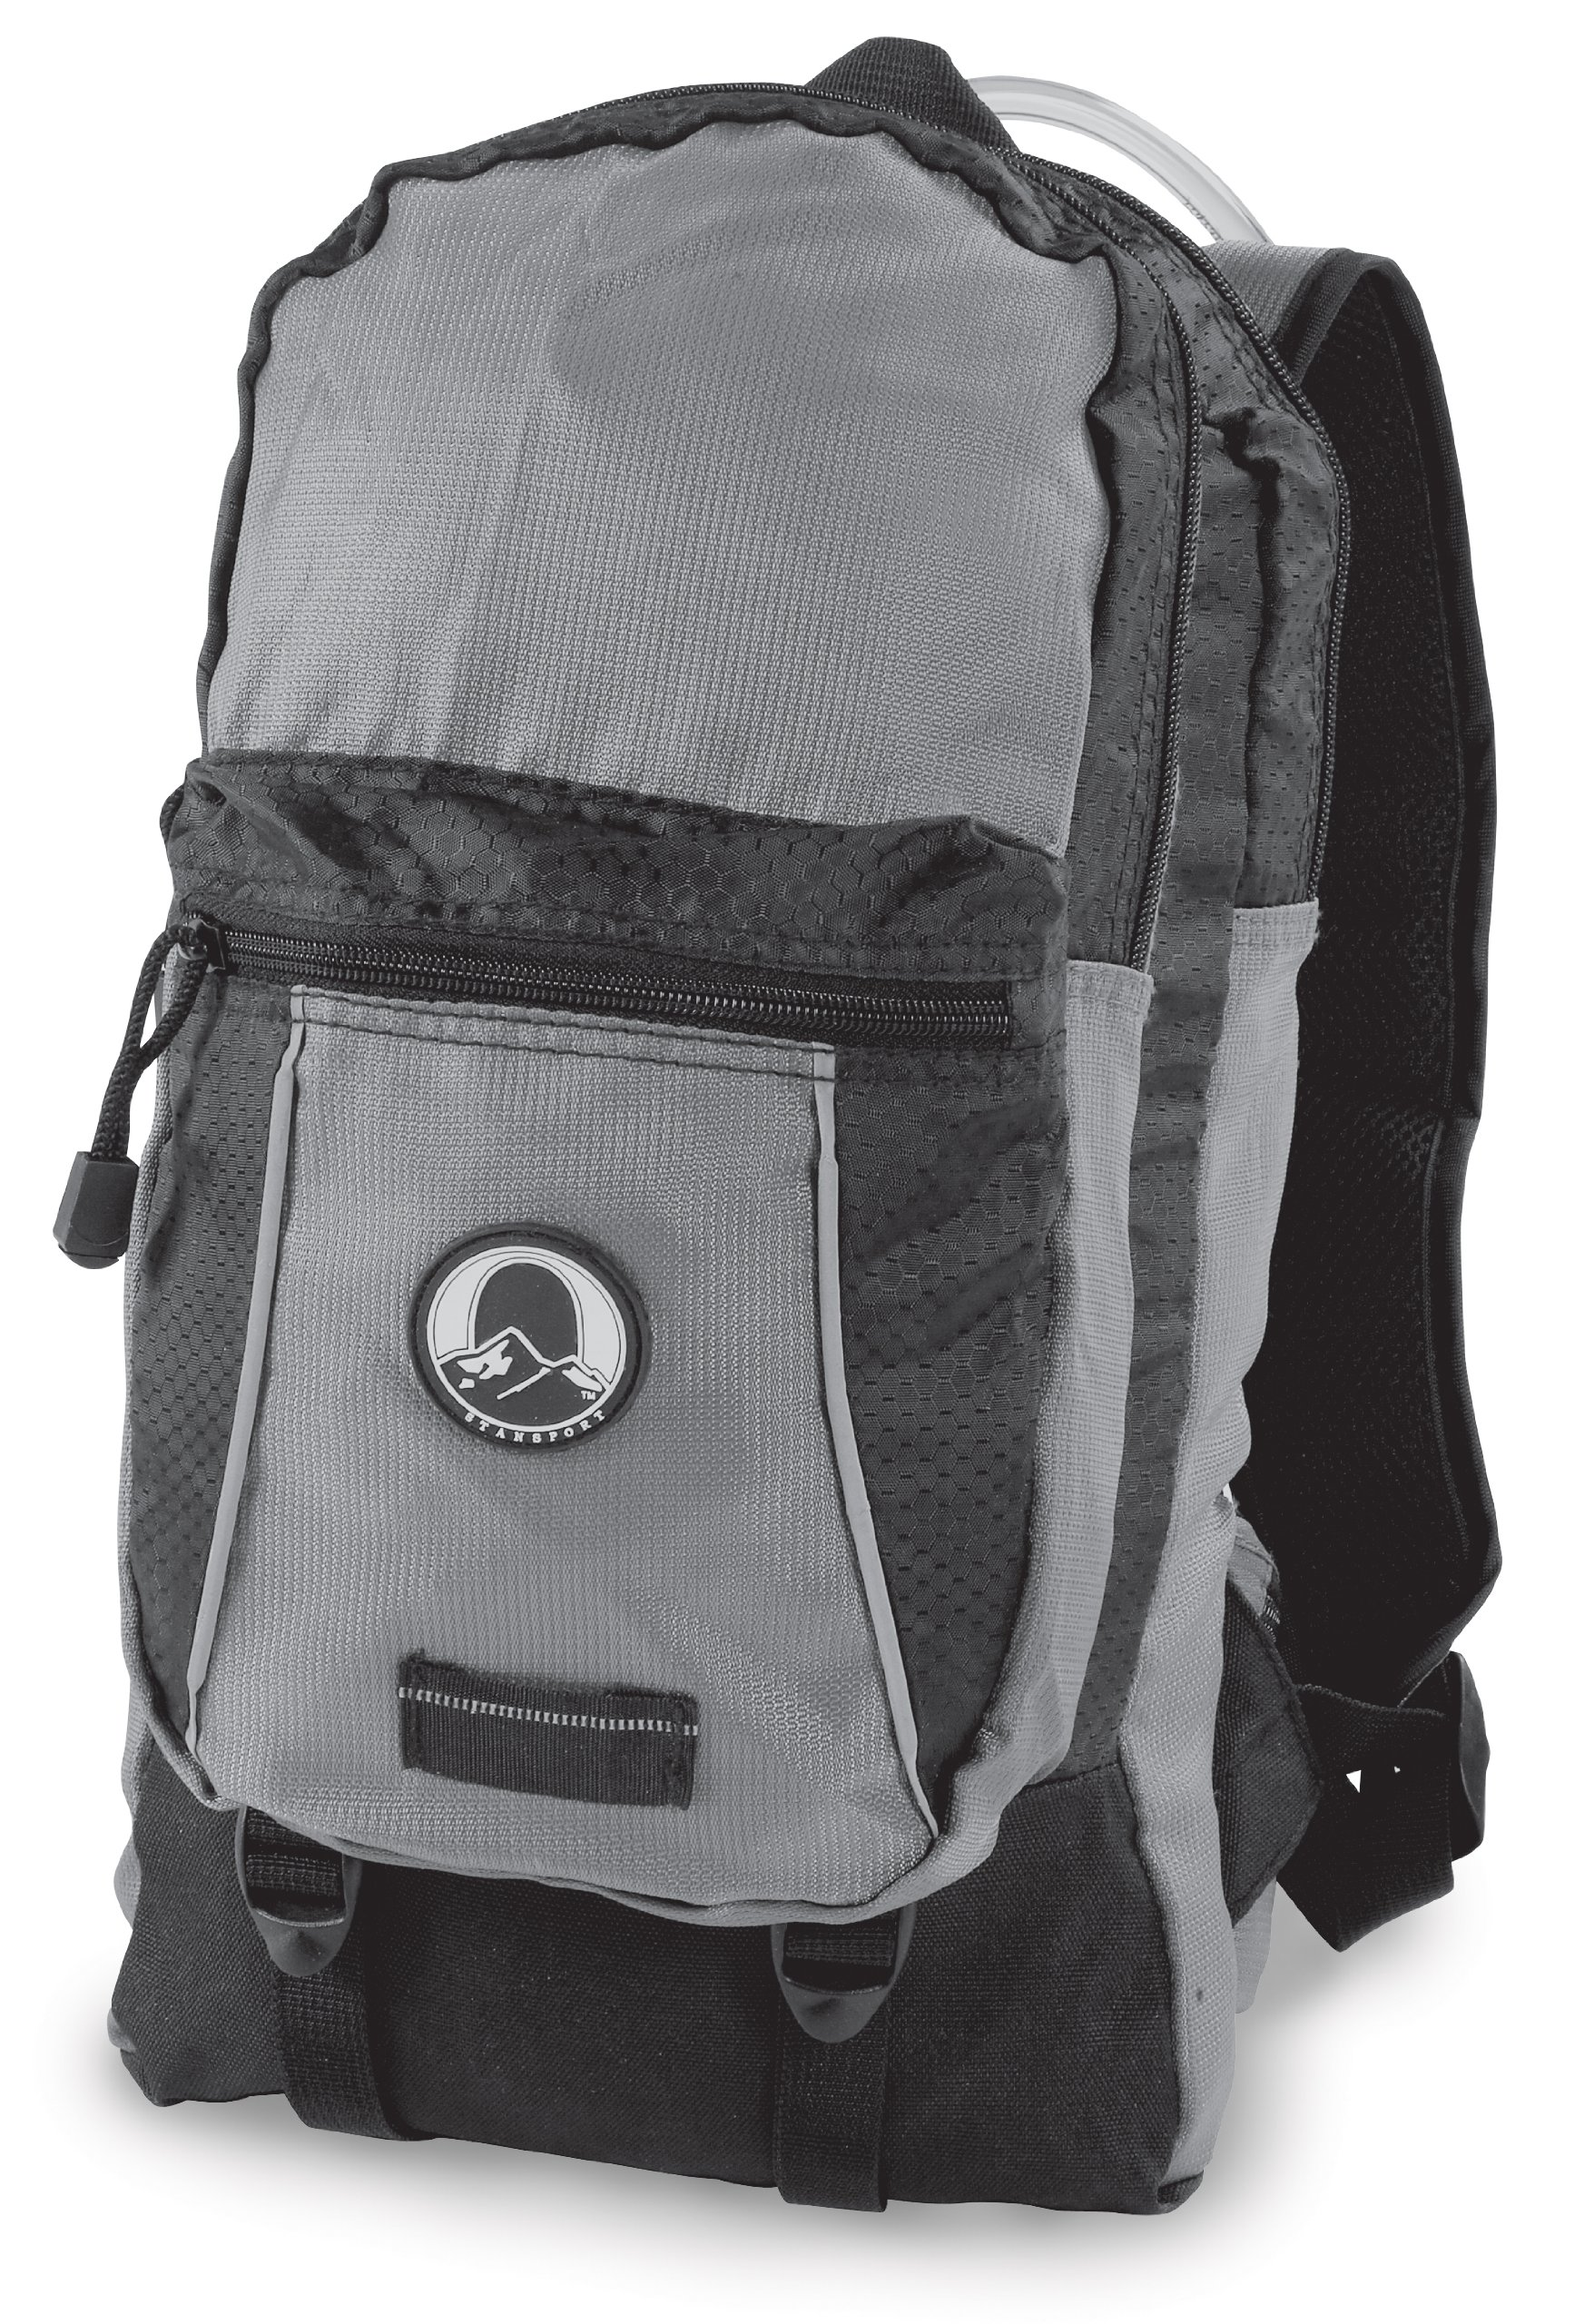 Stansport ''Red Wall'' Hydration Backpack, 2-Liter, Black/Gray by Stansport